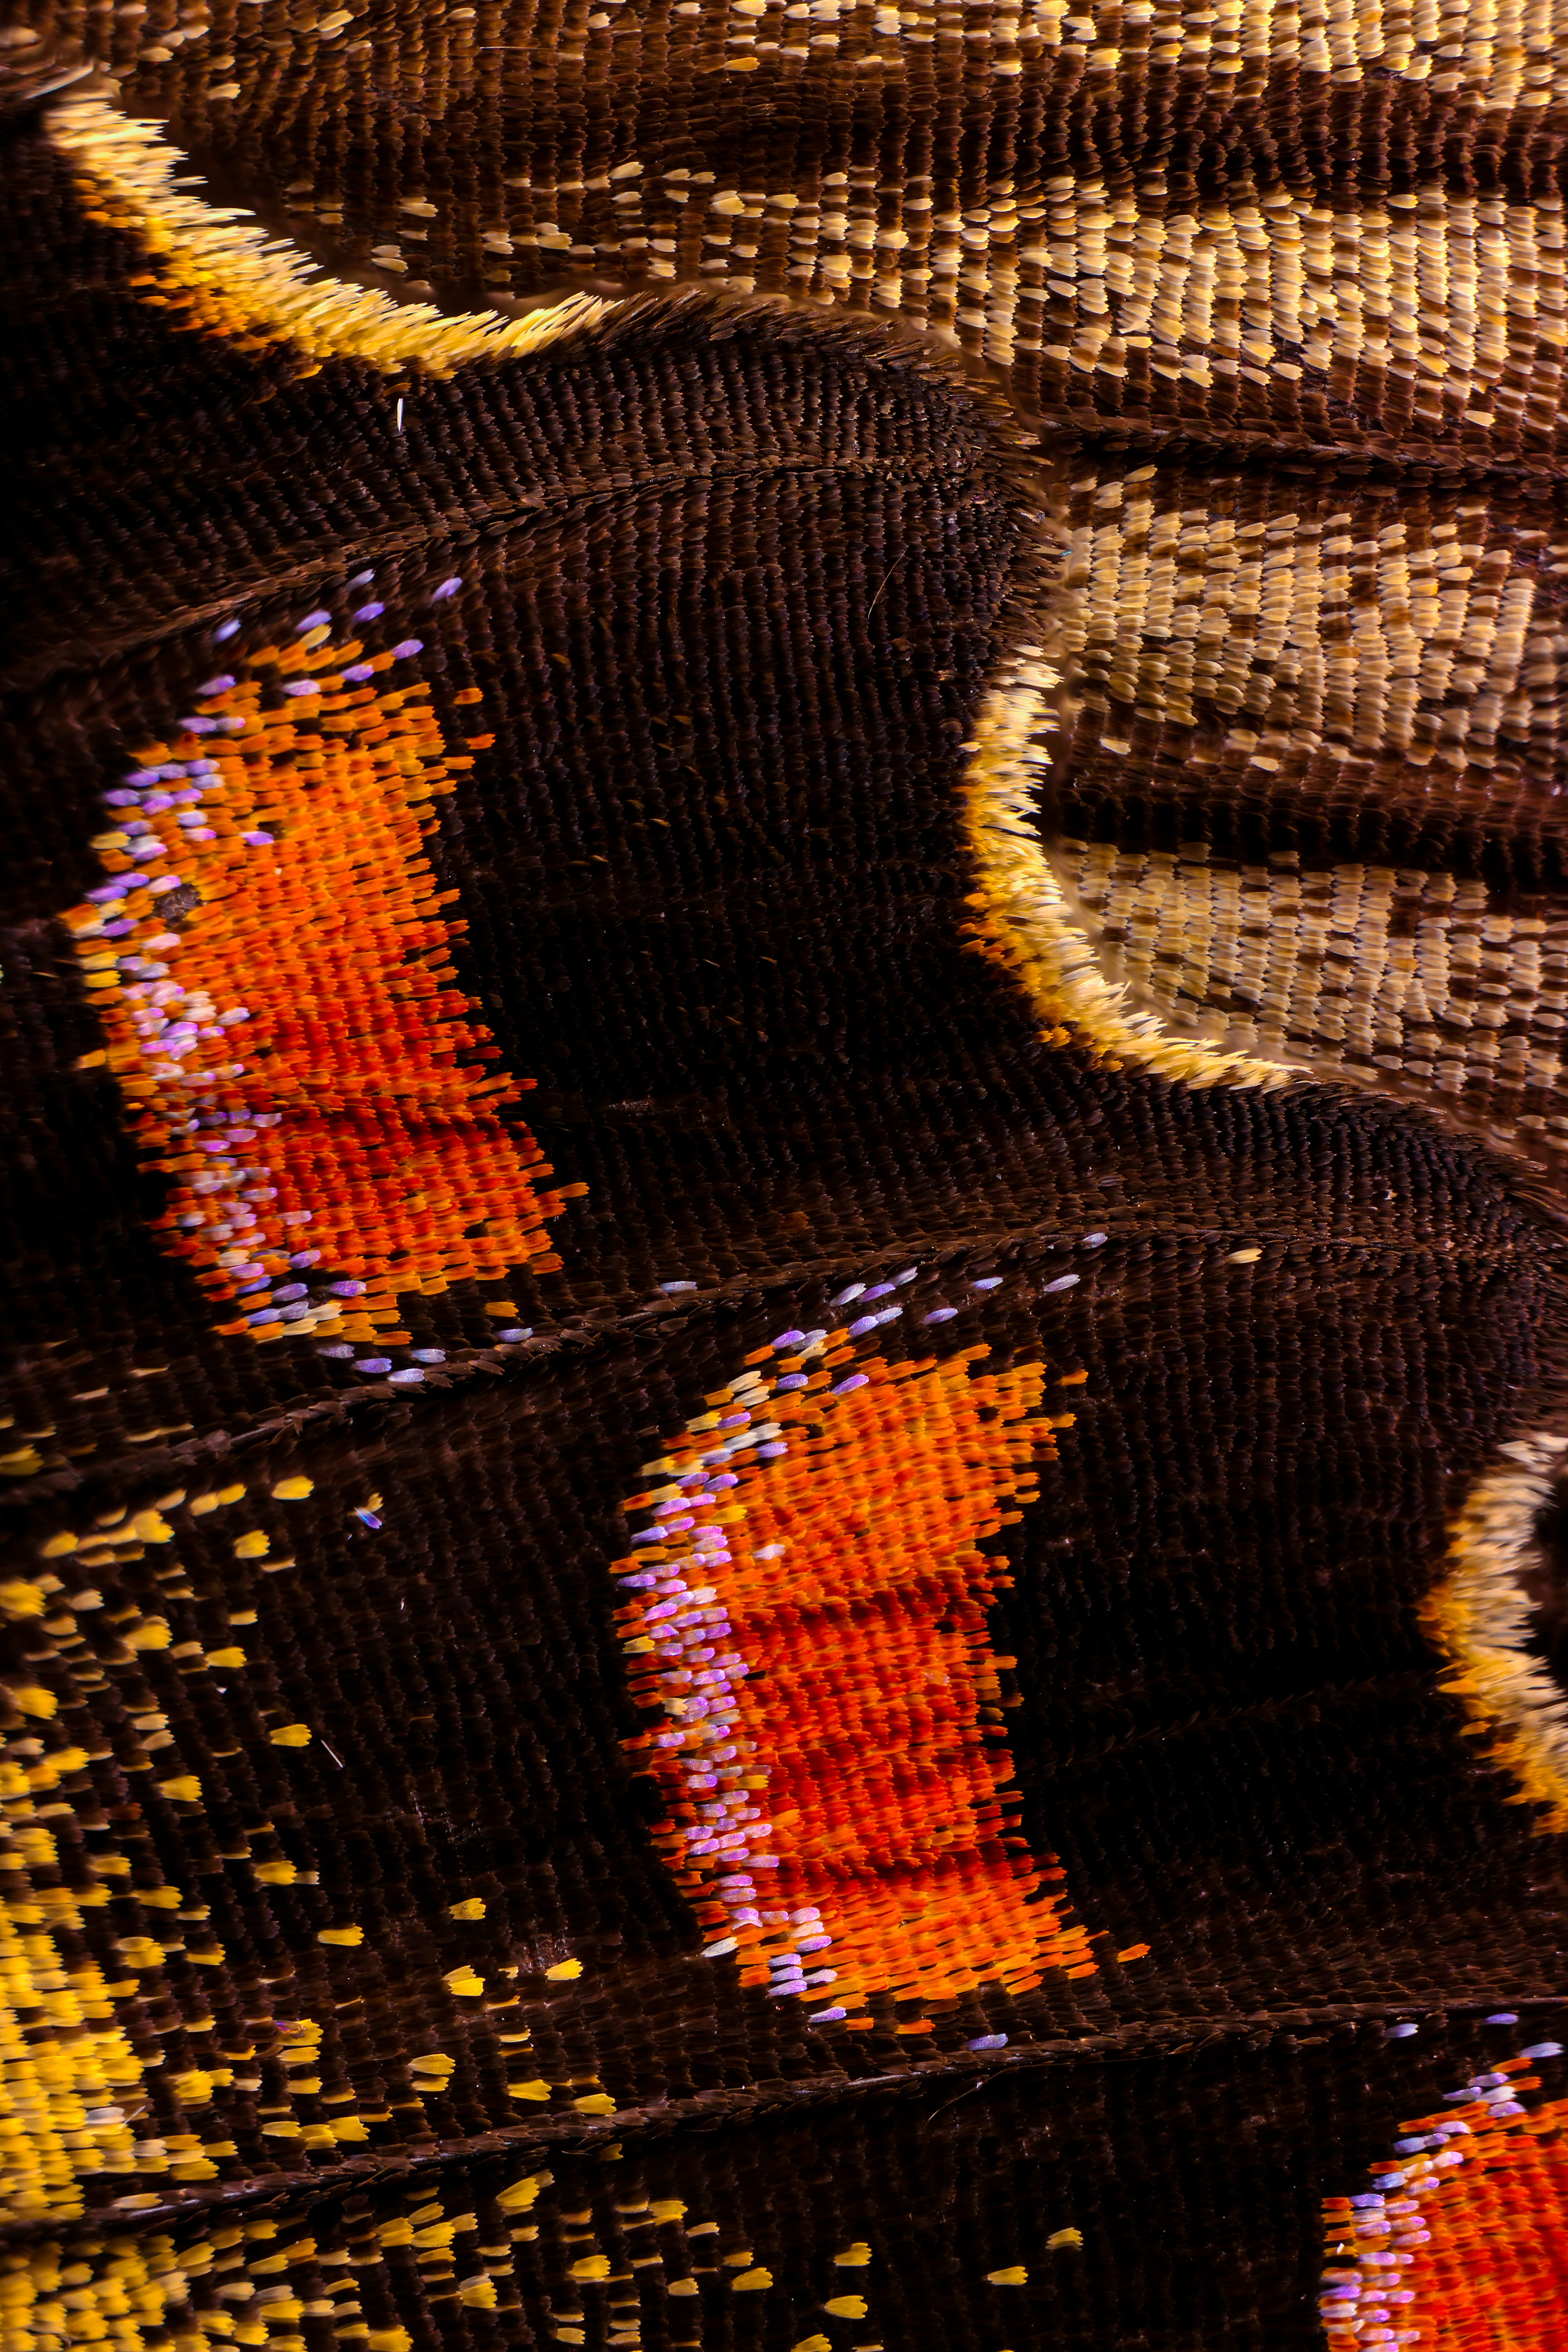 Macro Photography Reveals the Dazzling Scales and Multi-Colored Hairs That Cover Butterfly Wings